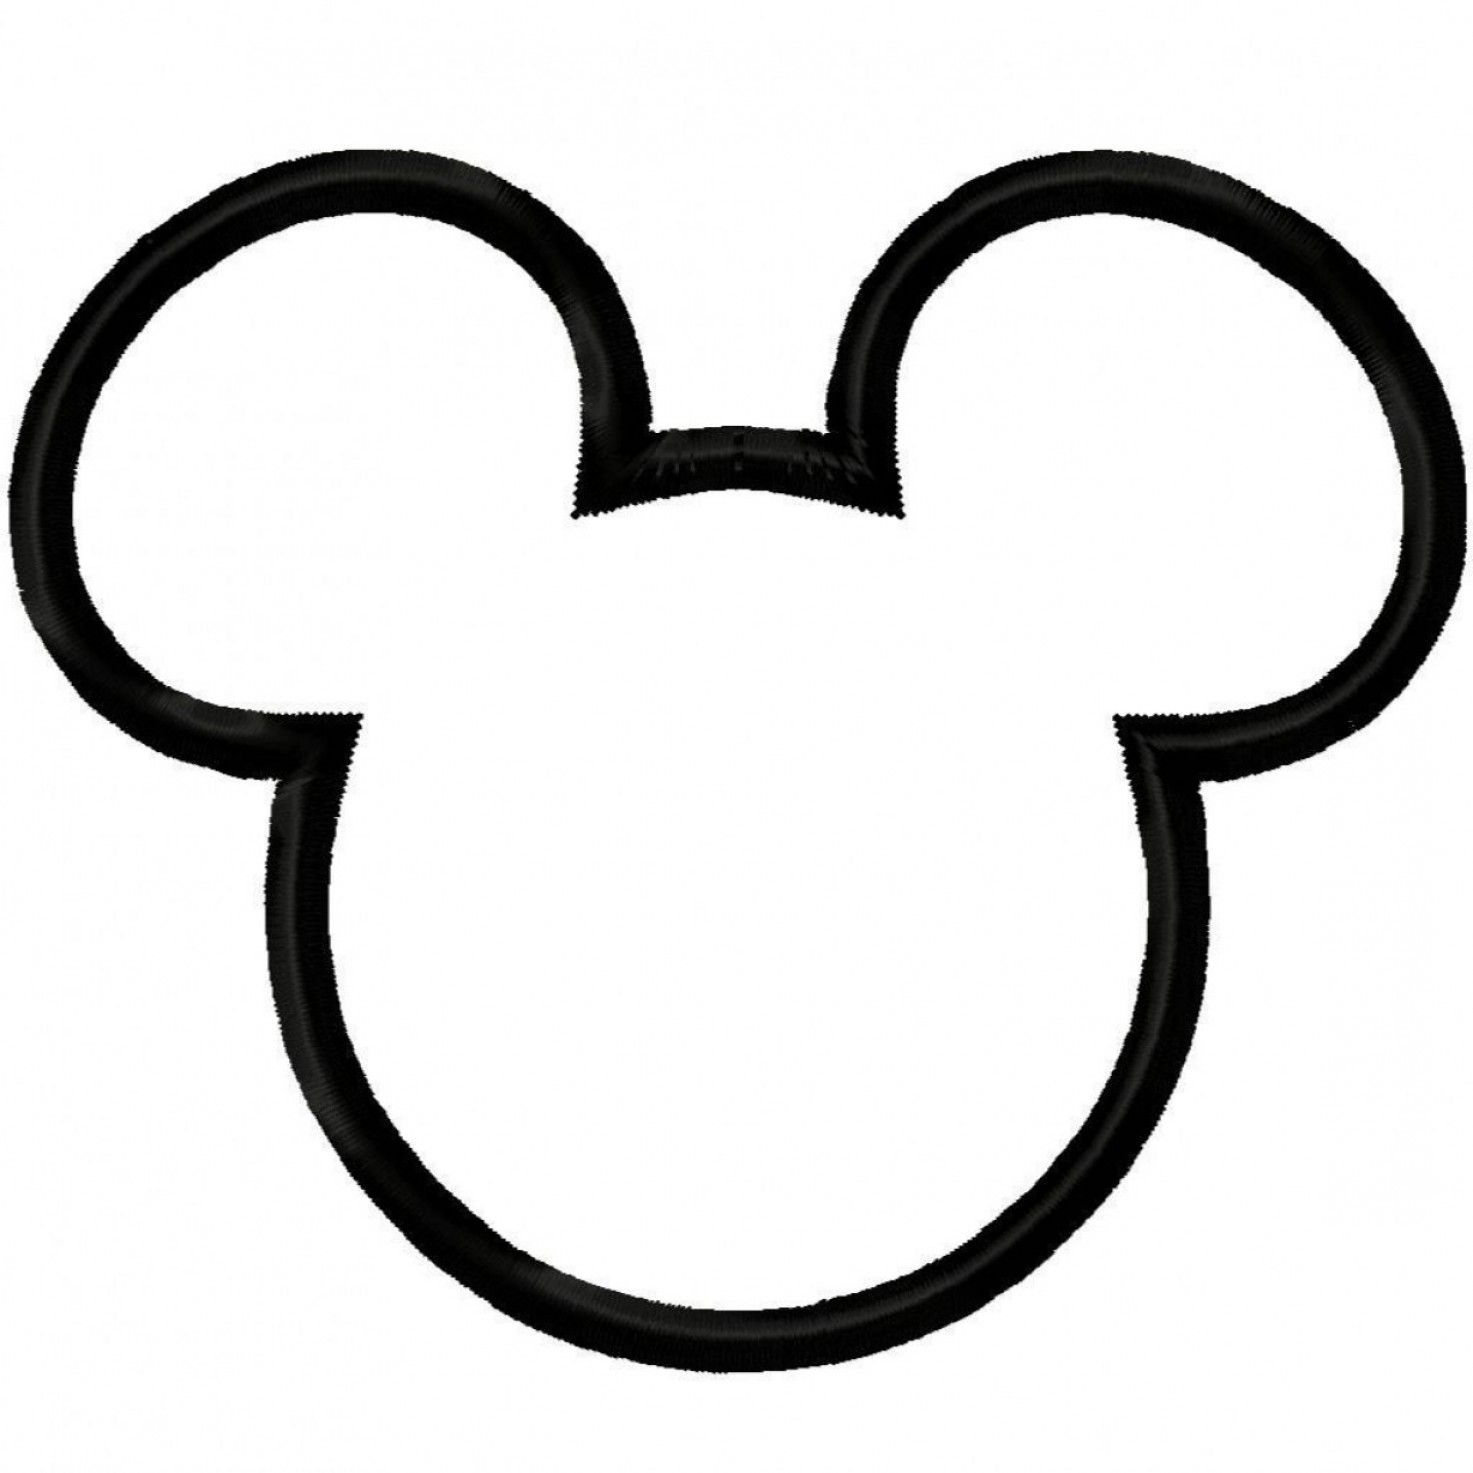 Free mickey mouse black and white outline clipart banner freeuse download Mickey Vector: Mickey Mouse Ears Clipart Black And White | Disney ... banner freeuse download